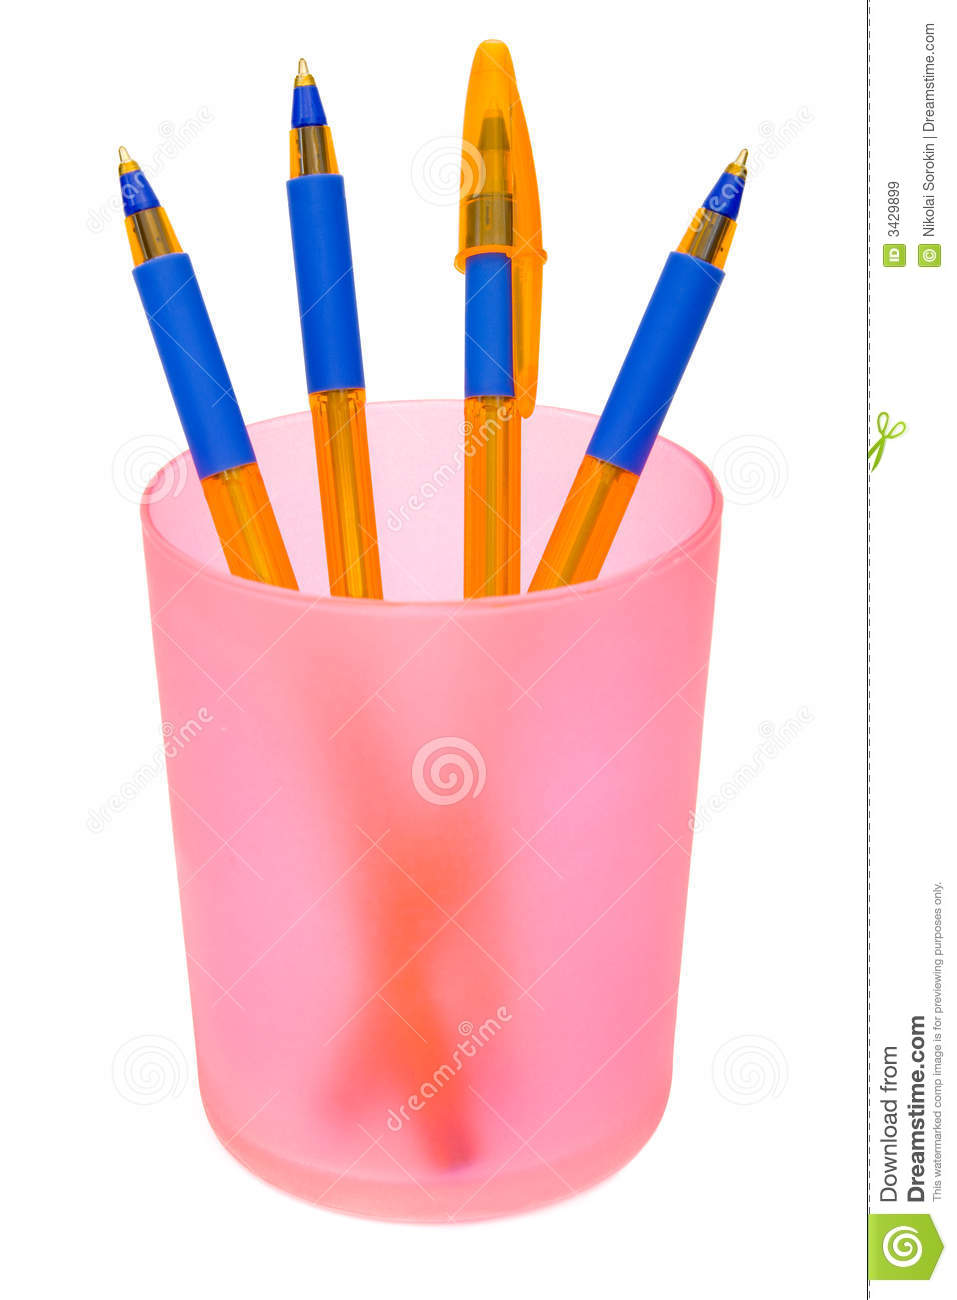 Pens in container